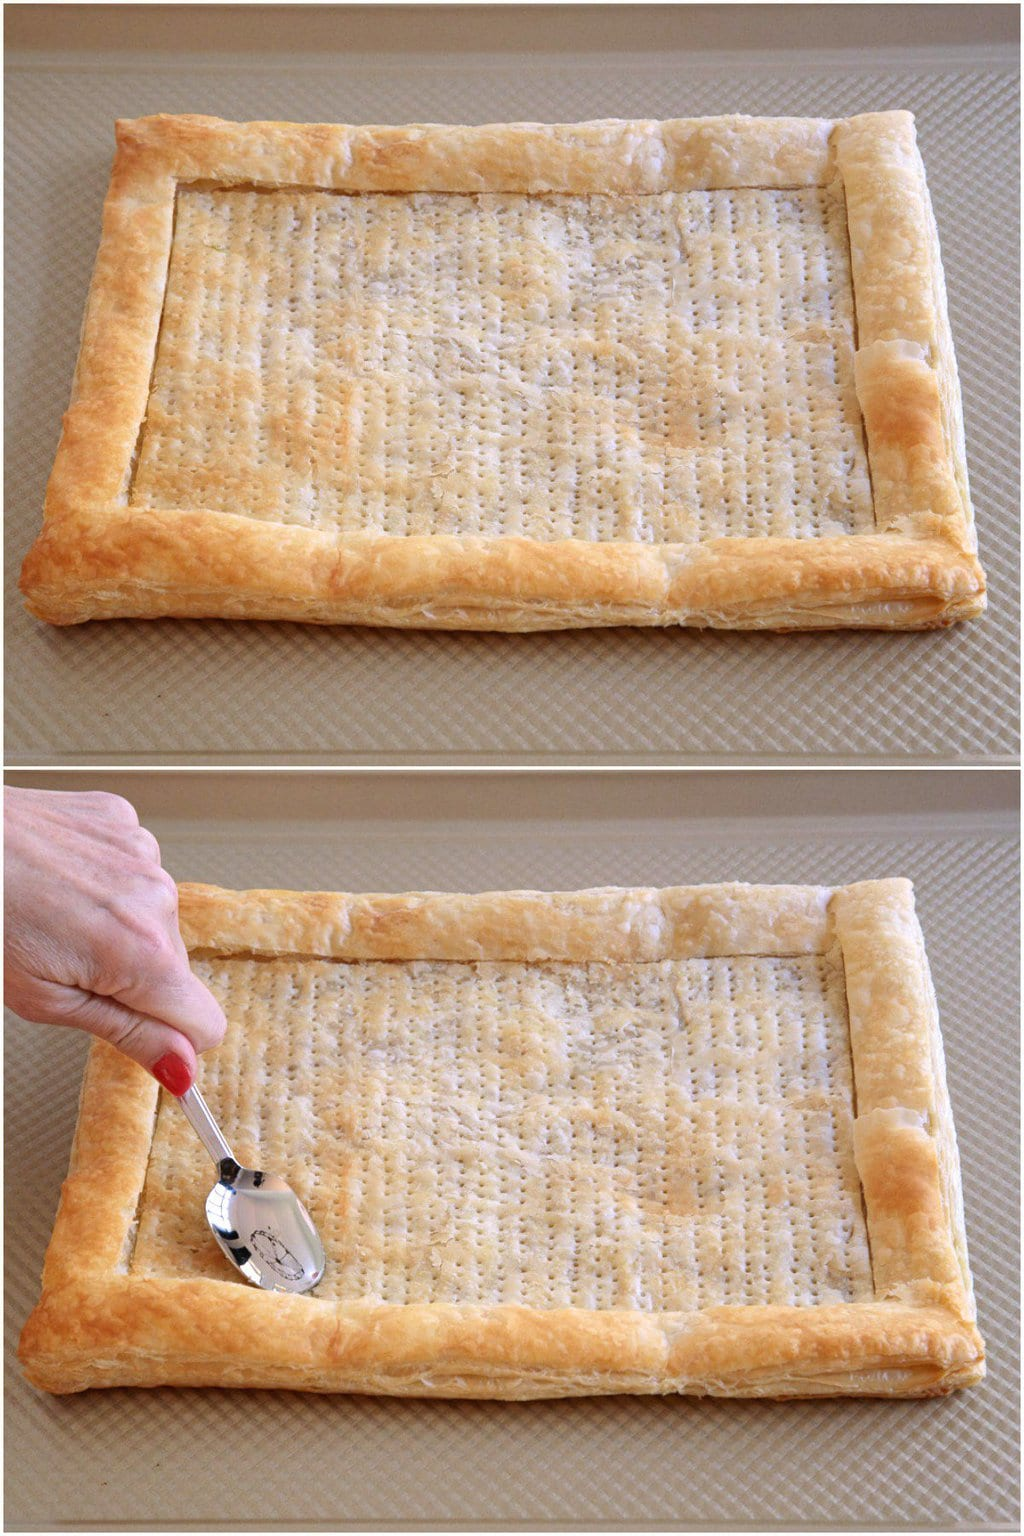 Collage of photos demonstrating how to press down the crust for an Easy Savory Puff Pastry Tart.